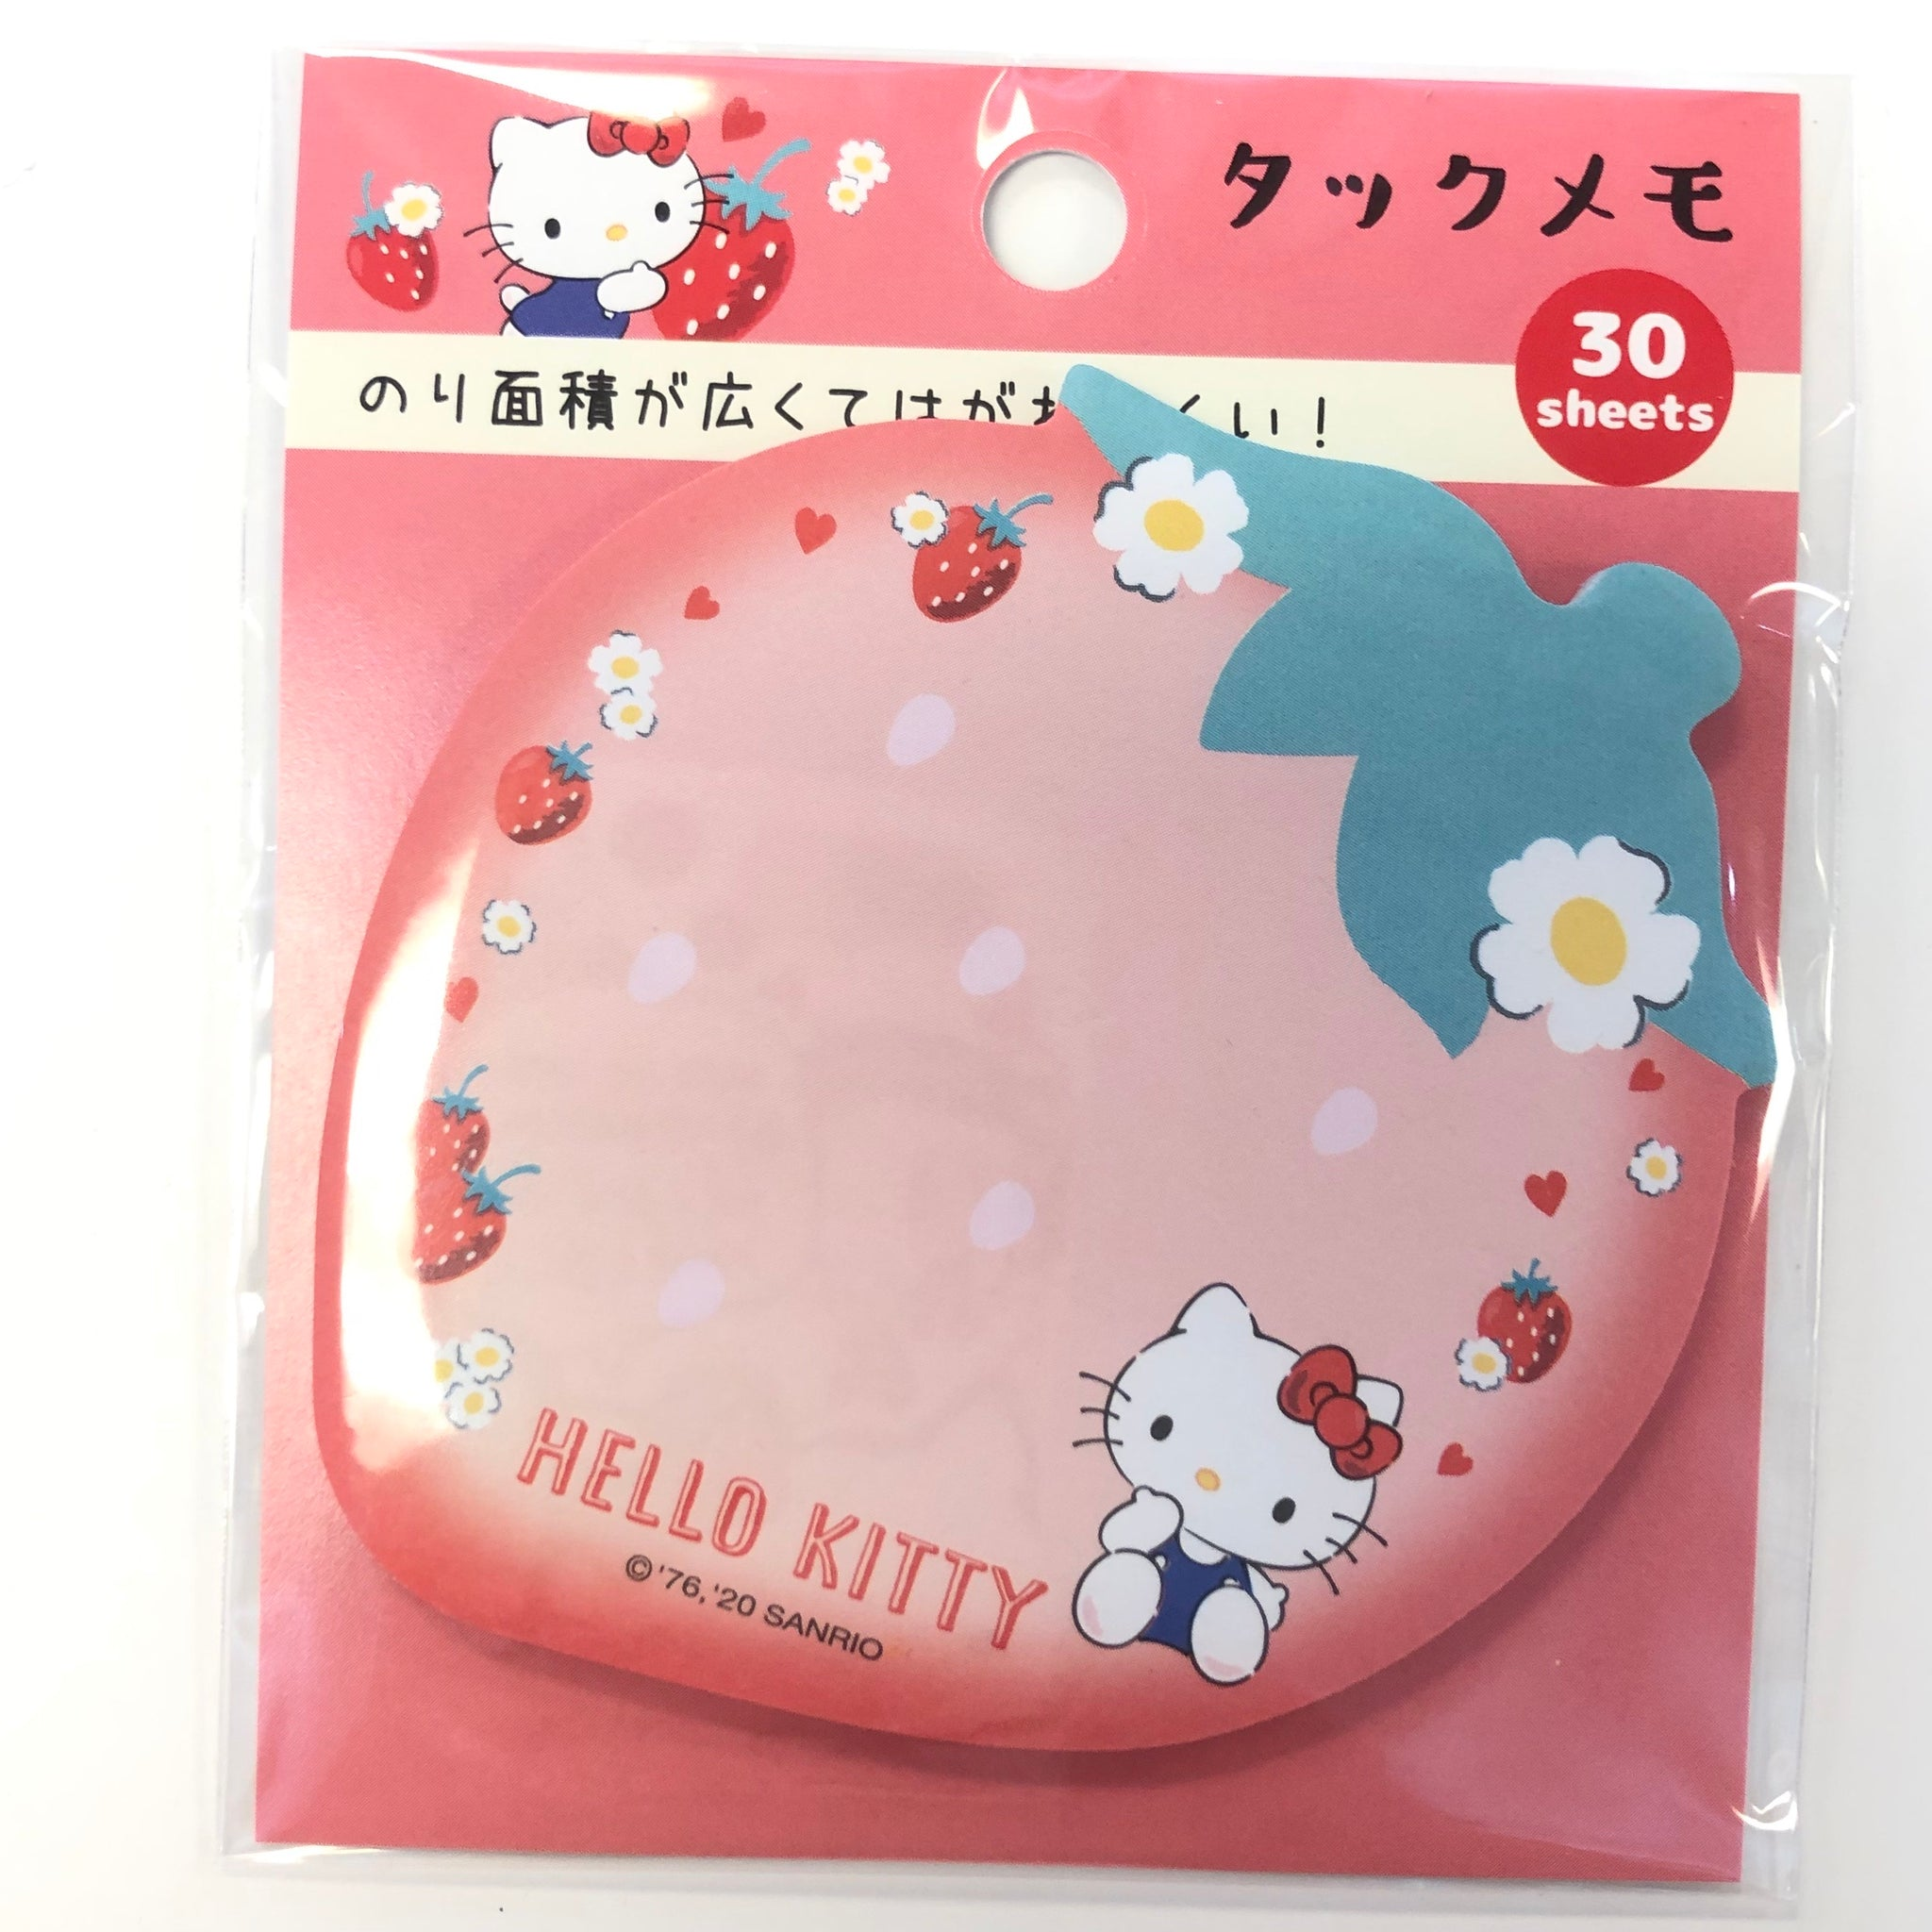 Sanrio Characters Sticky Notes